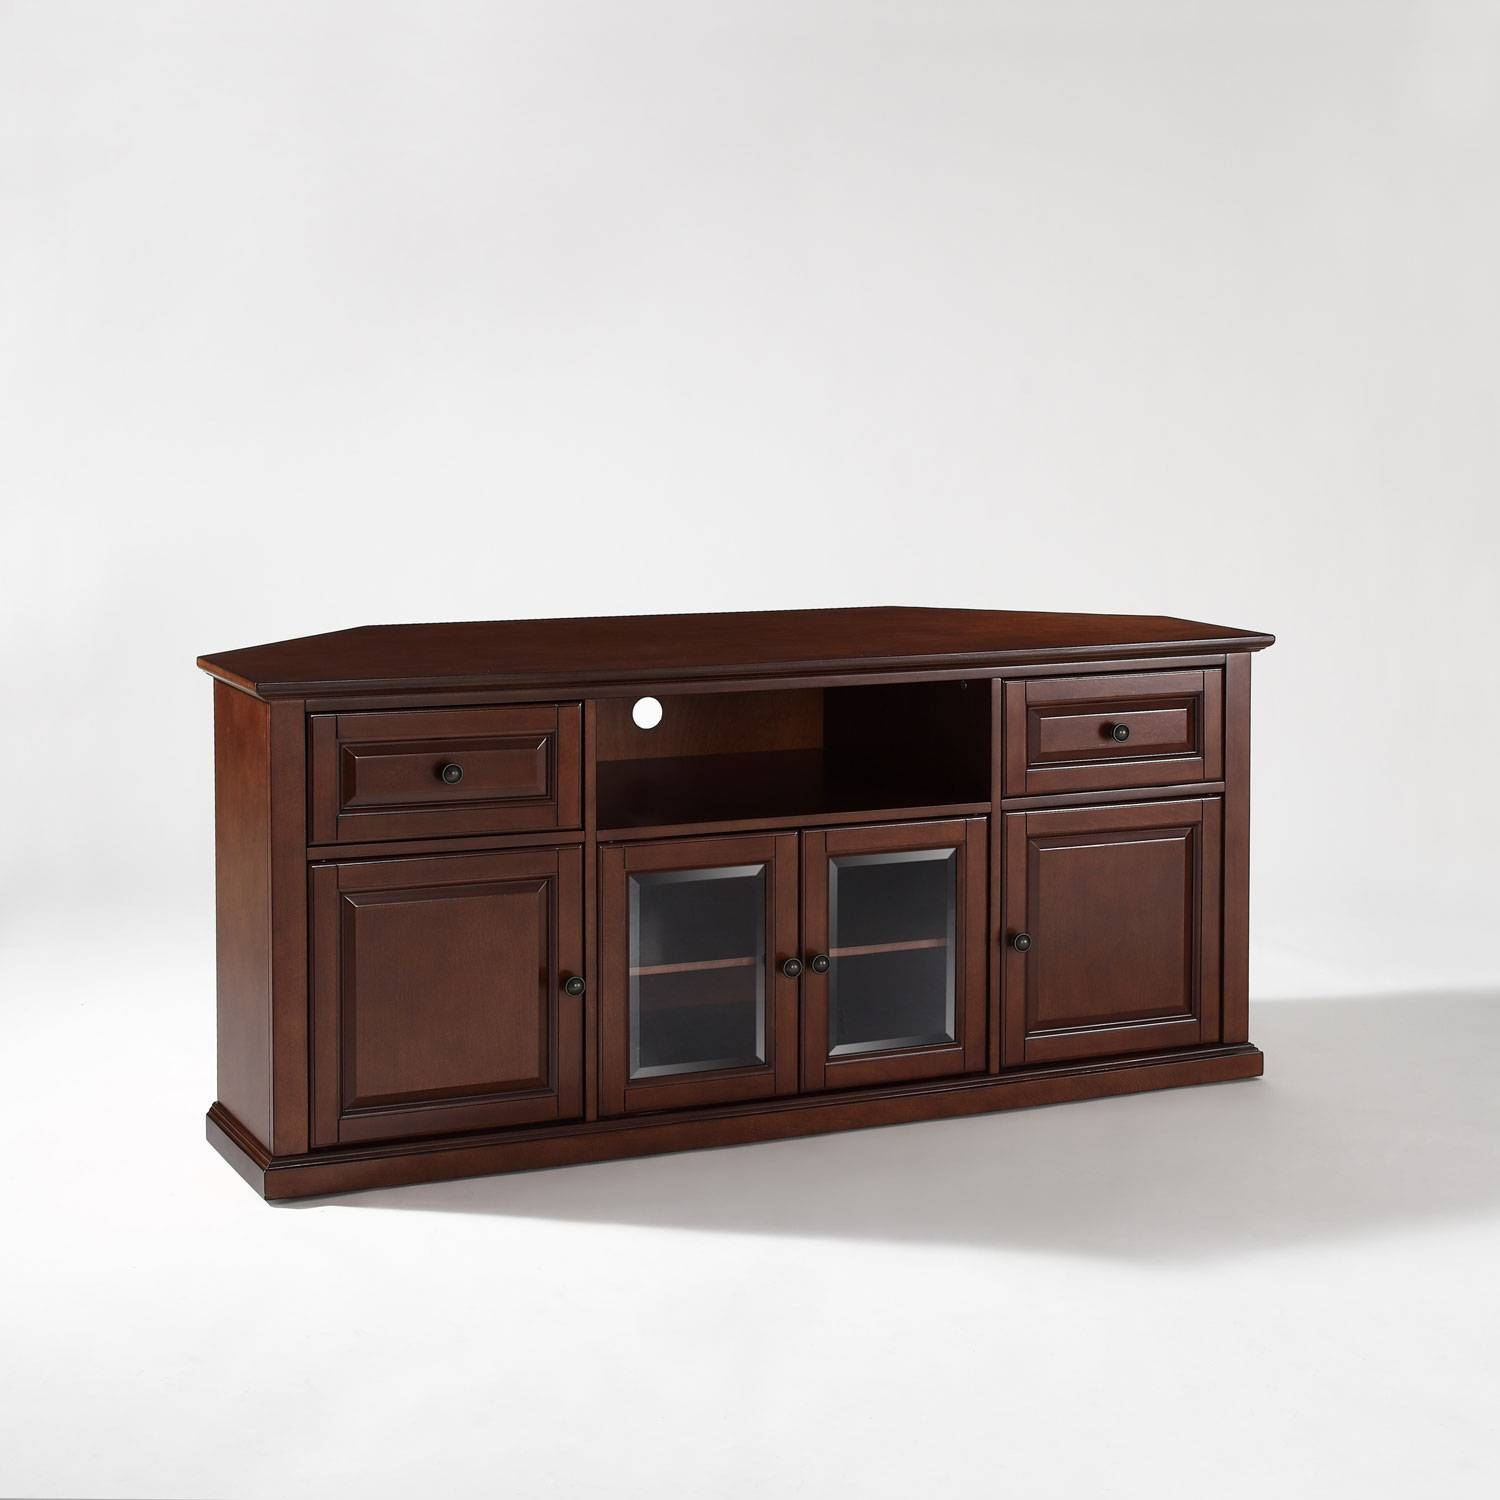 60 Inch Corner Tv Stand In Vintage Mahogany Crosley Furniture pertaining to 50 Inch Corner Tv Cabinets (Image 1 of 15)